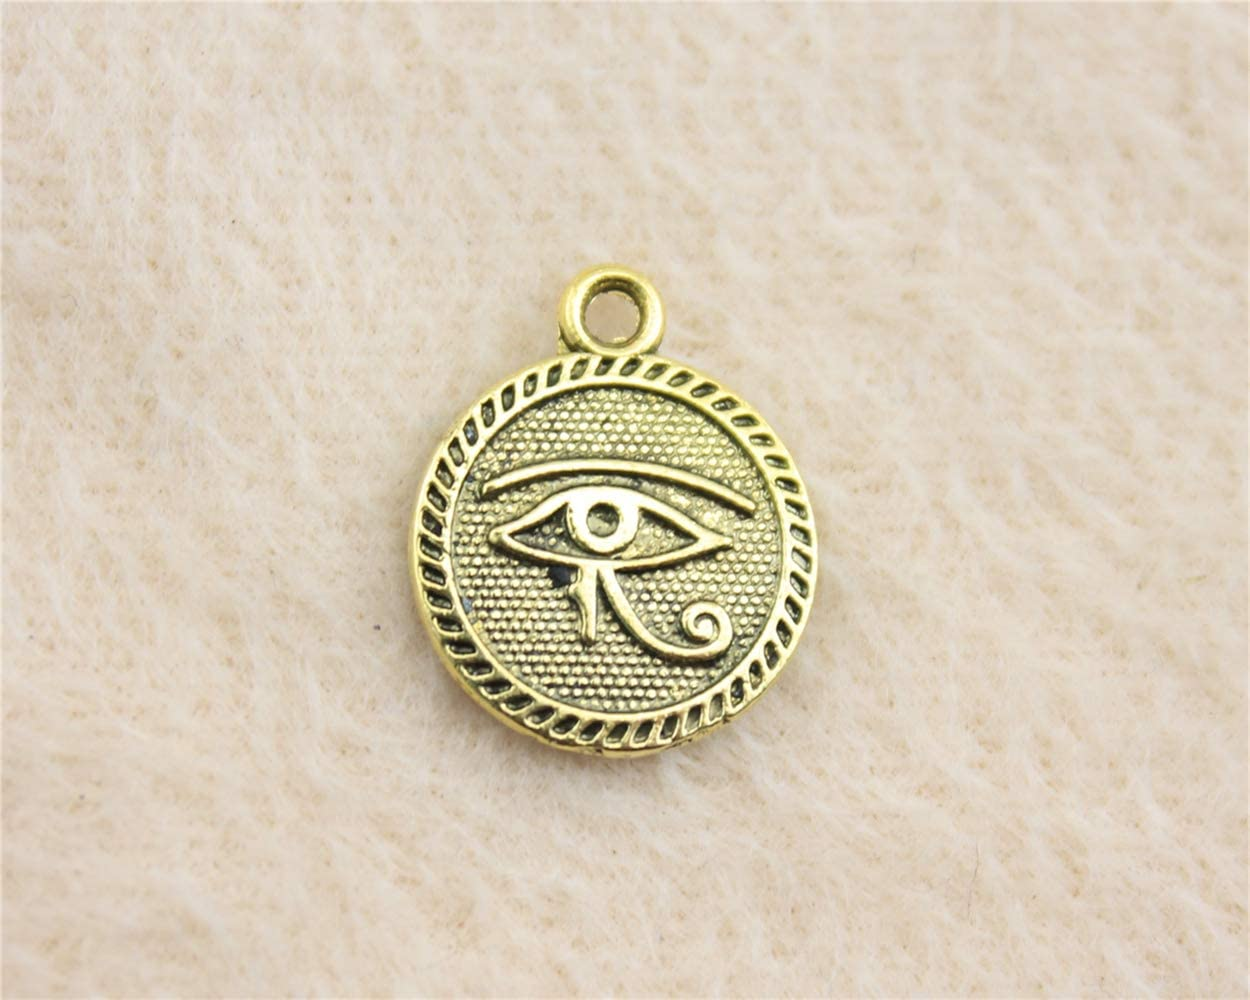 NEWME 30Pcs Double Side Eye of Horus Charms Pendant for DIY Jewelry Wholesale Crafting Bracelet and Necklace Making